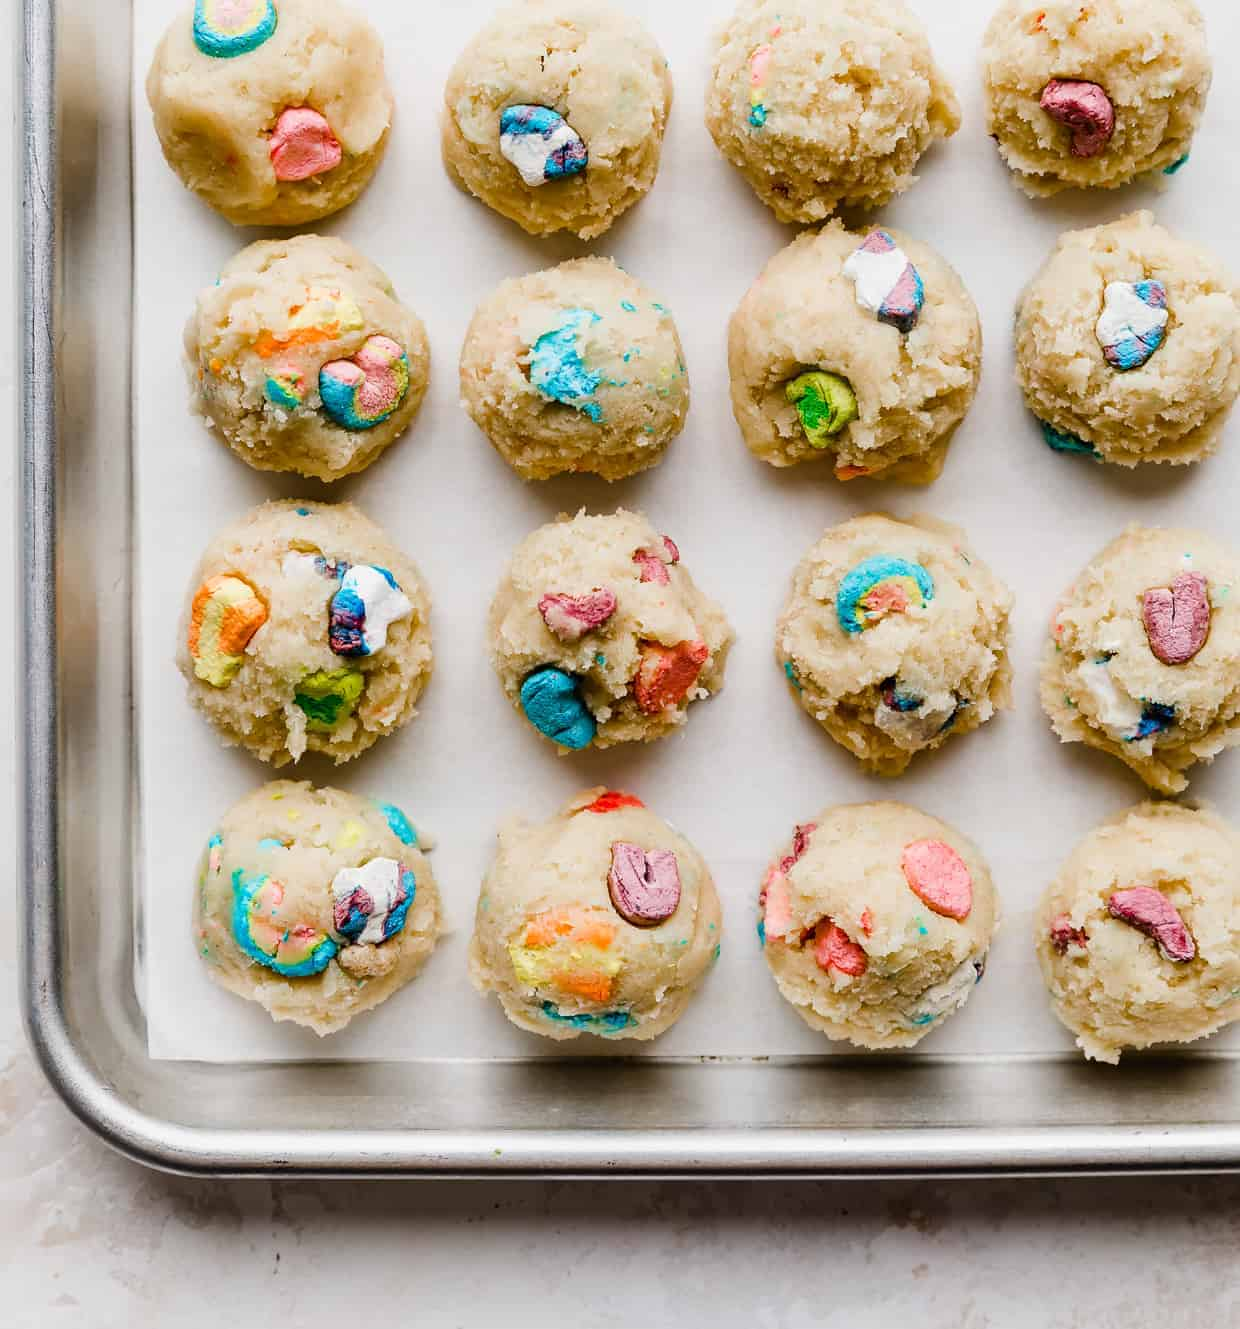 A white parchment lined baking sheet with balls of sugar cookie dough balls topped with lucky charms marshmallows on the tops.